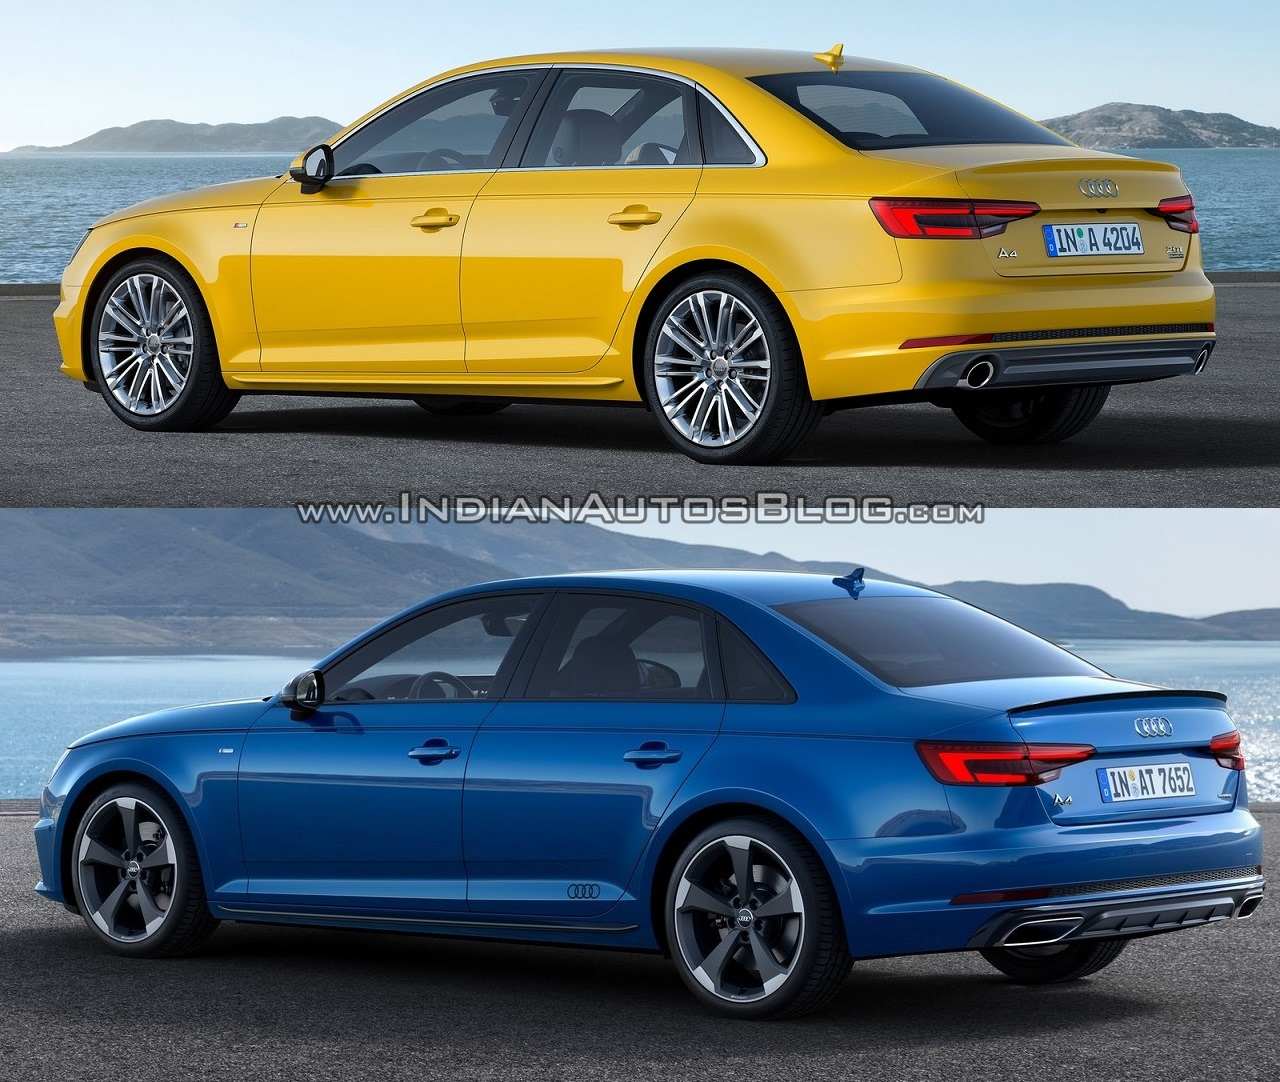 2016 Audi A4 Vs 2019 Audi A4 Old Vs New